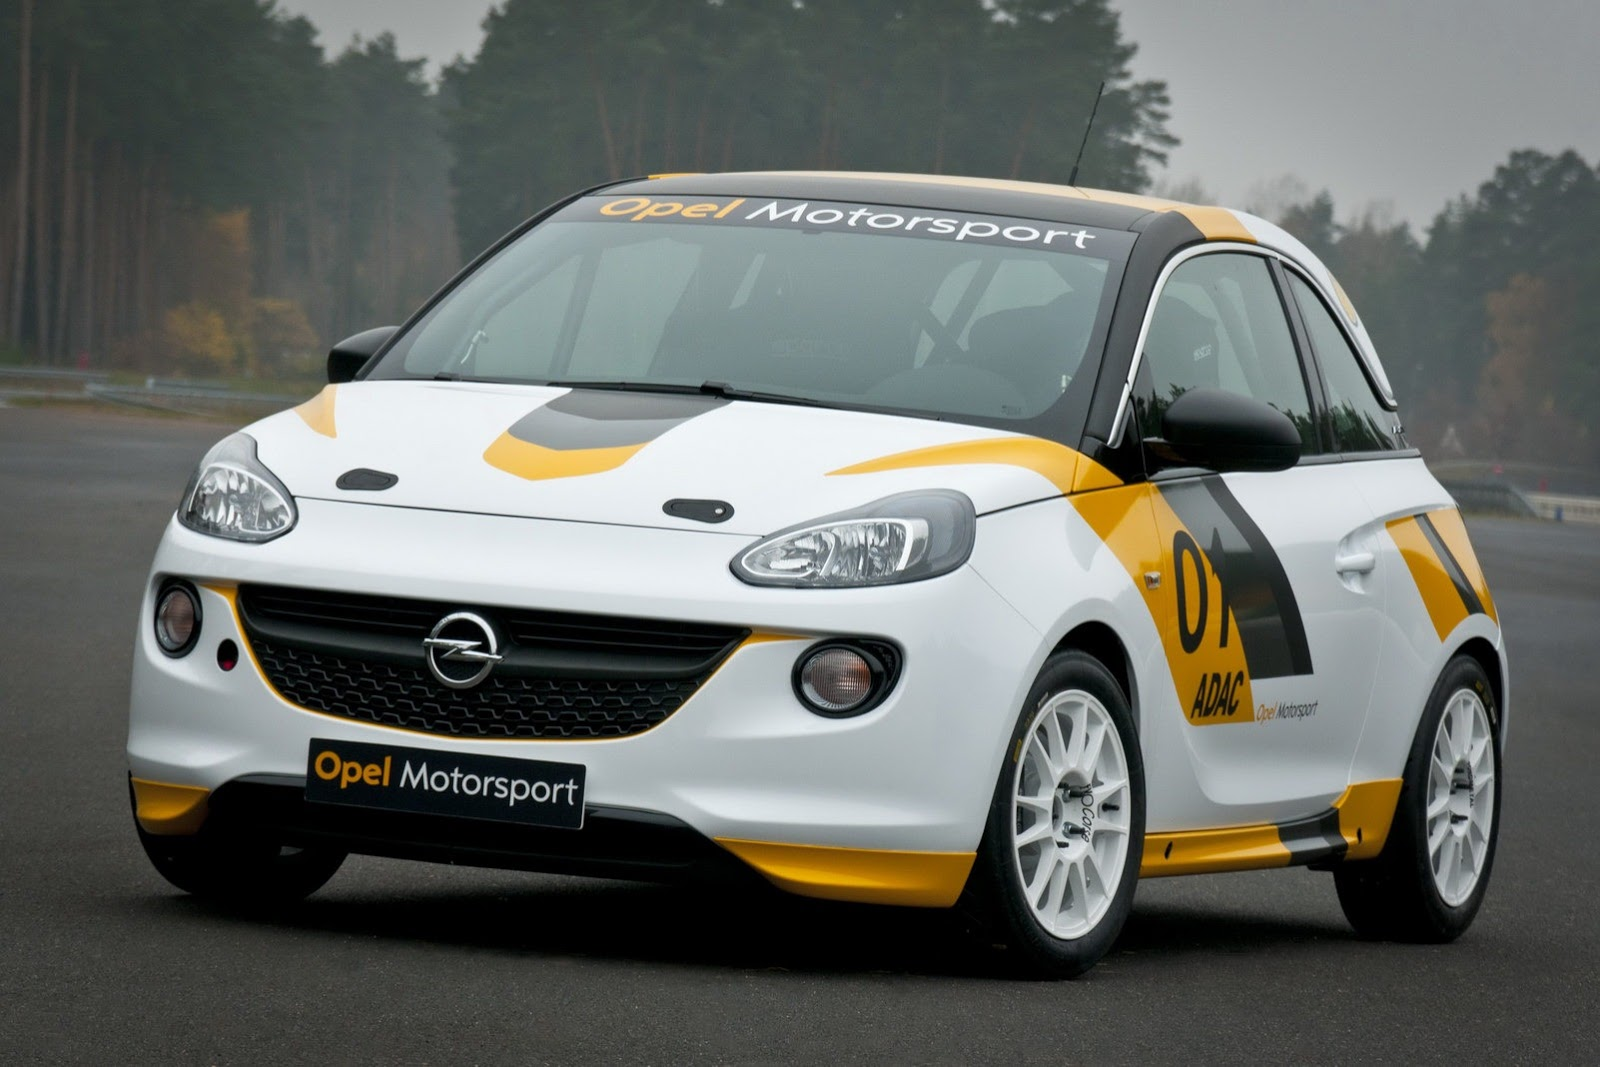 opel returns to motorsport with astra opc cup and adam cup. Black Bedroom Furniture Sets. Home Design Ideas